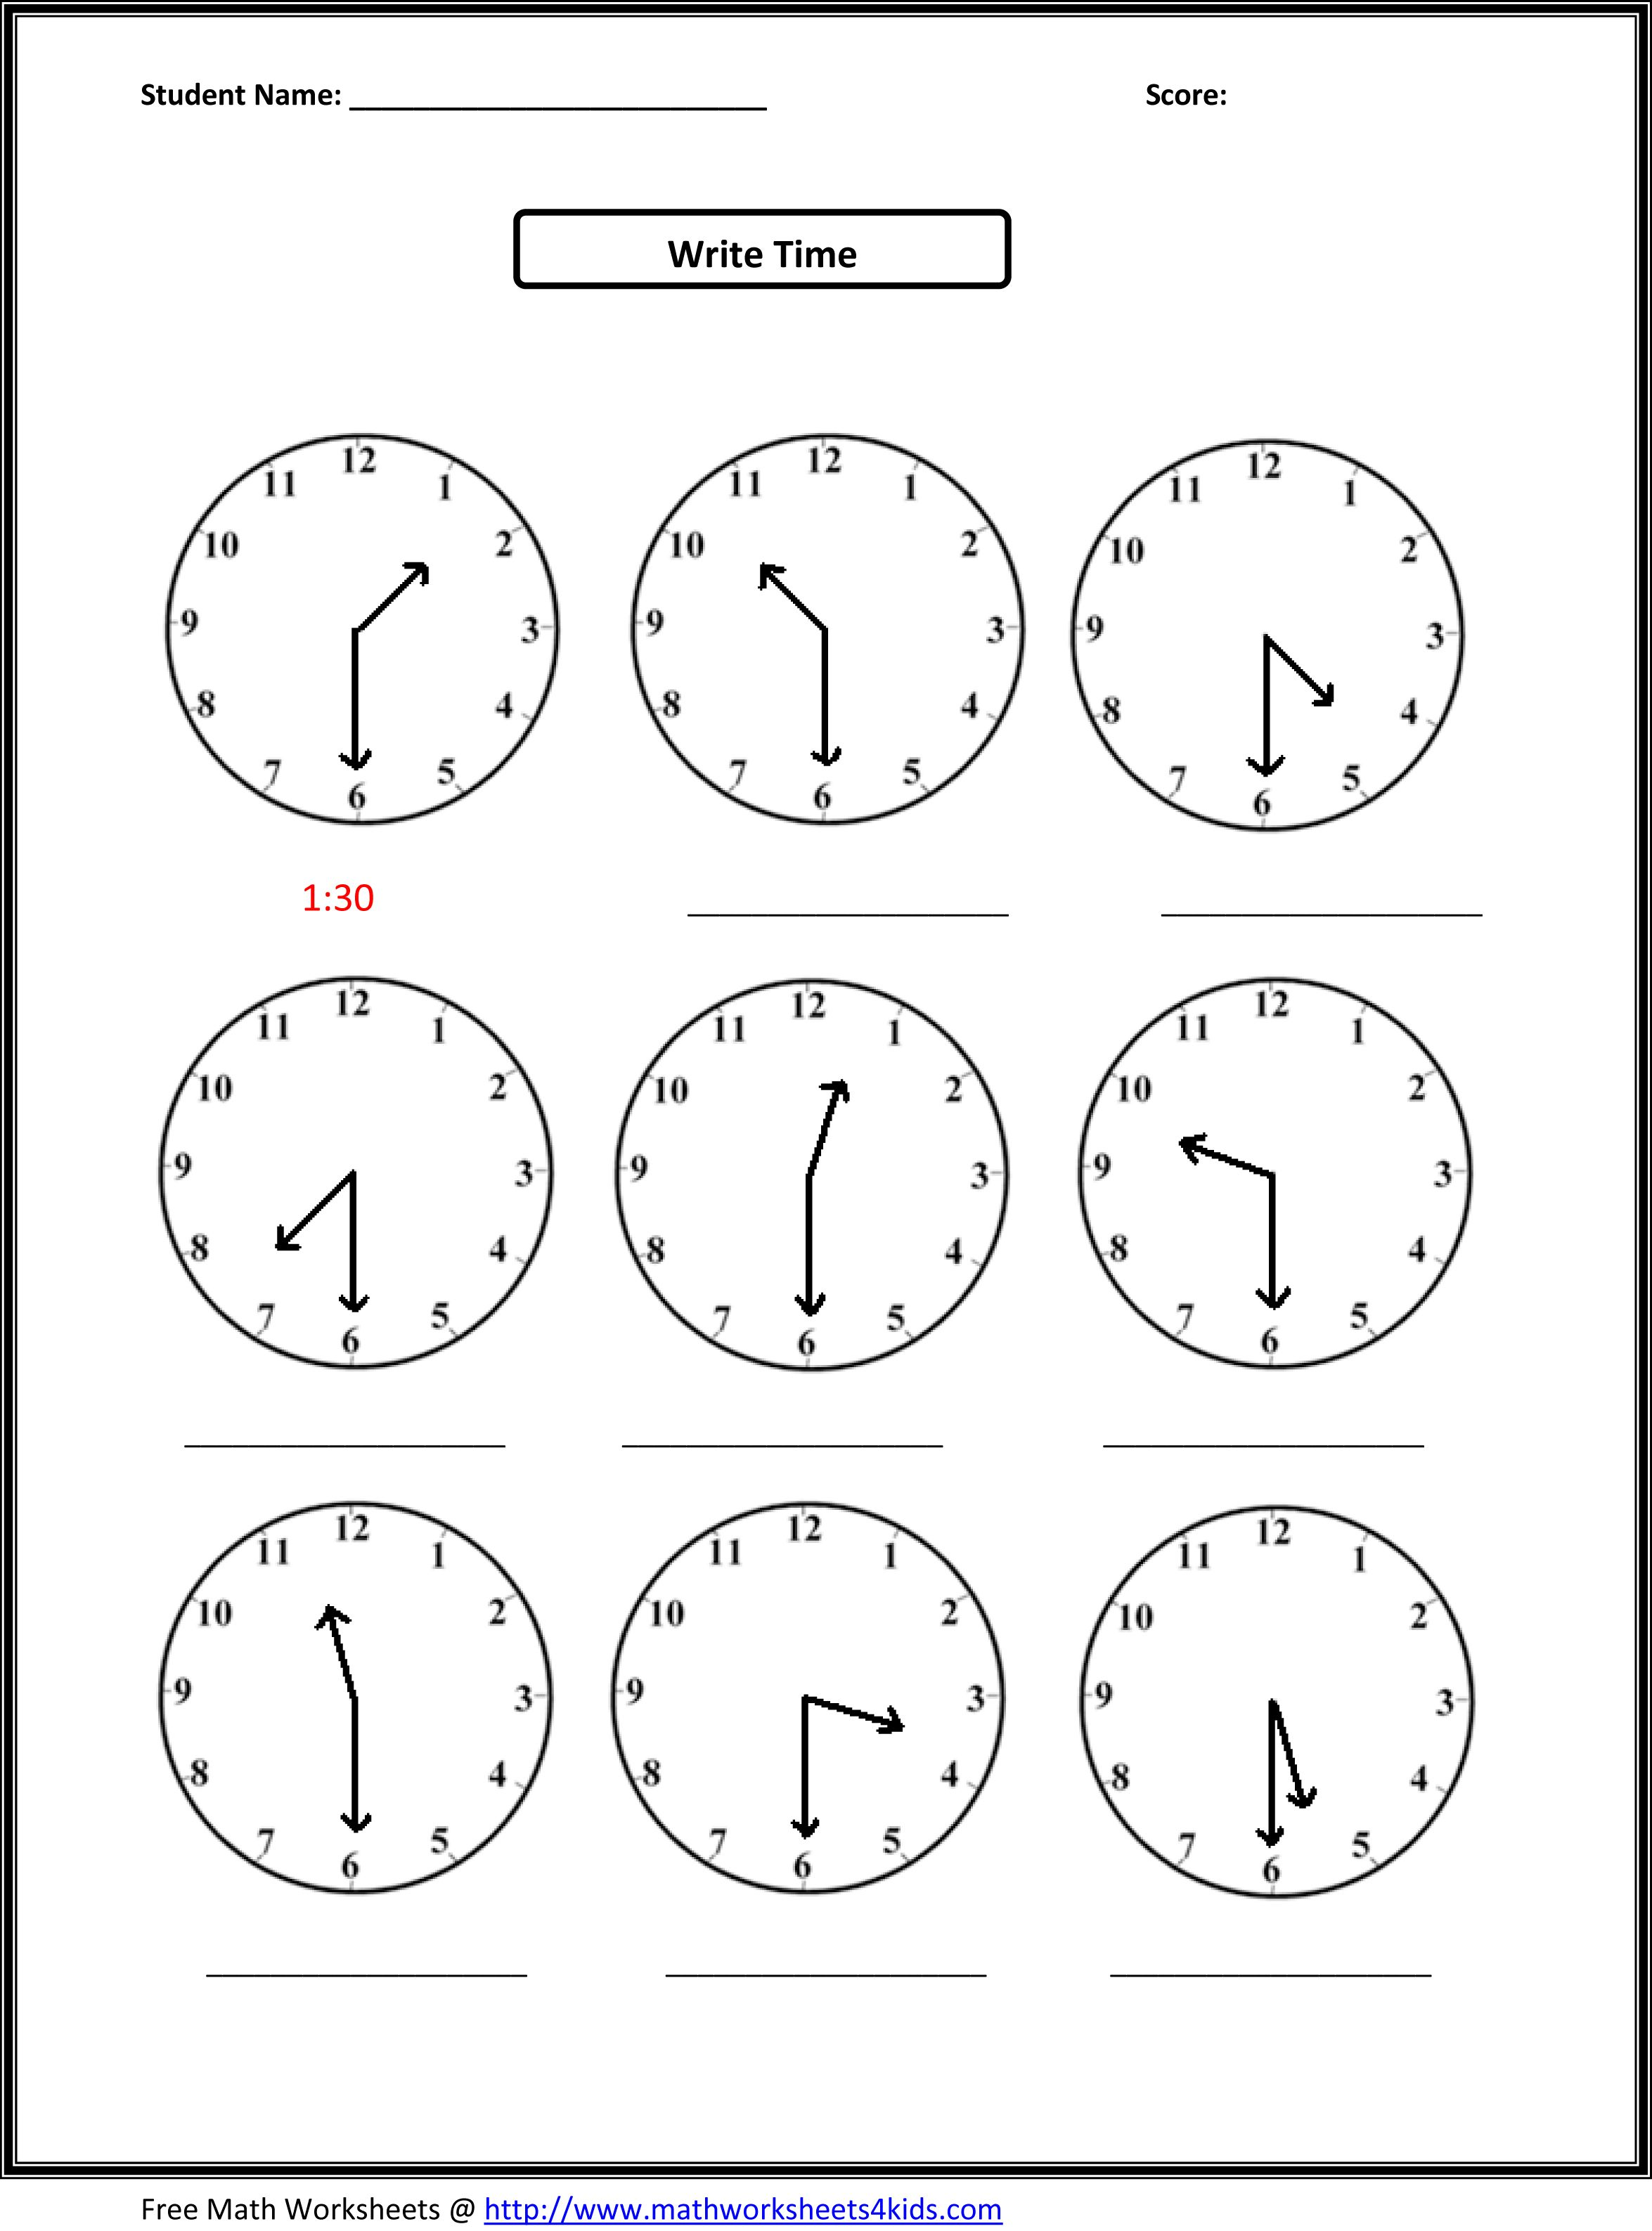 Proatmealus  Winsome Worksheet On Time For Grade   Reocurent With Gorgeous Free Printable Telling Time Worksheets Nd Grade  Reocurent With Astonishing Vowels Words Worksheets Also Mathematics Grade  Worksheets In Addition Algebraic Patterns Worksheet And Crm Worksheet Army As Well As Demonstrative Adjective Worksheet Additionally Grade  Math Worksheet From Reocurentcom With Proatmealus  Gorgeous Worksheet On Time For Grade   Reocurent With Astonishing Free Printable Telling Time Worksheets Nd Grade  Reocurent And Winsome Vowels Words Worksheets Also Mathematics Grade  Worksheets In Addition Algebraic Patterns Worksheet From Reocurentcom